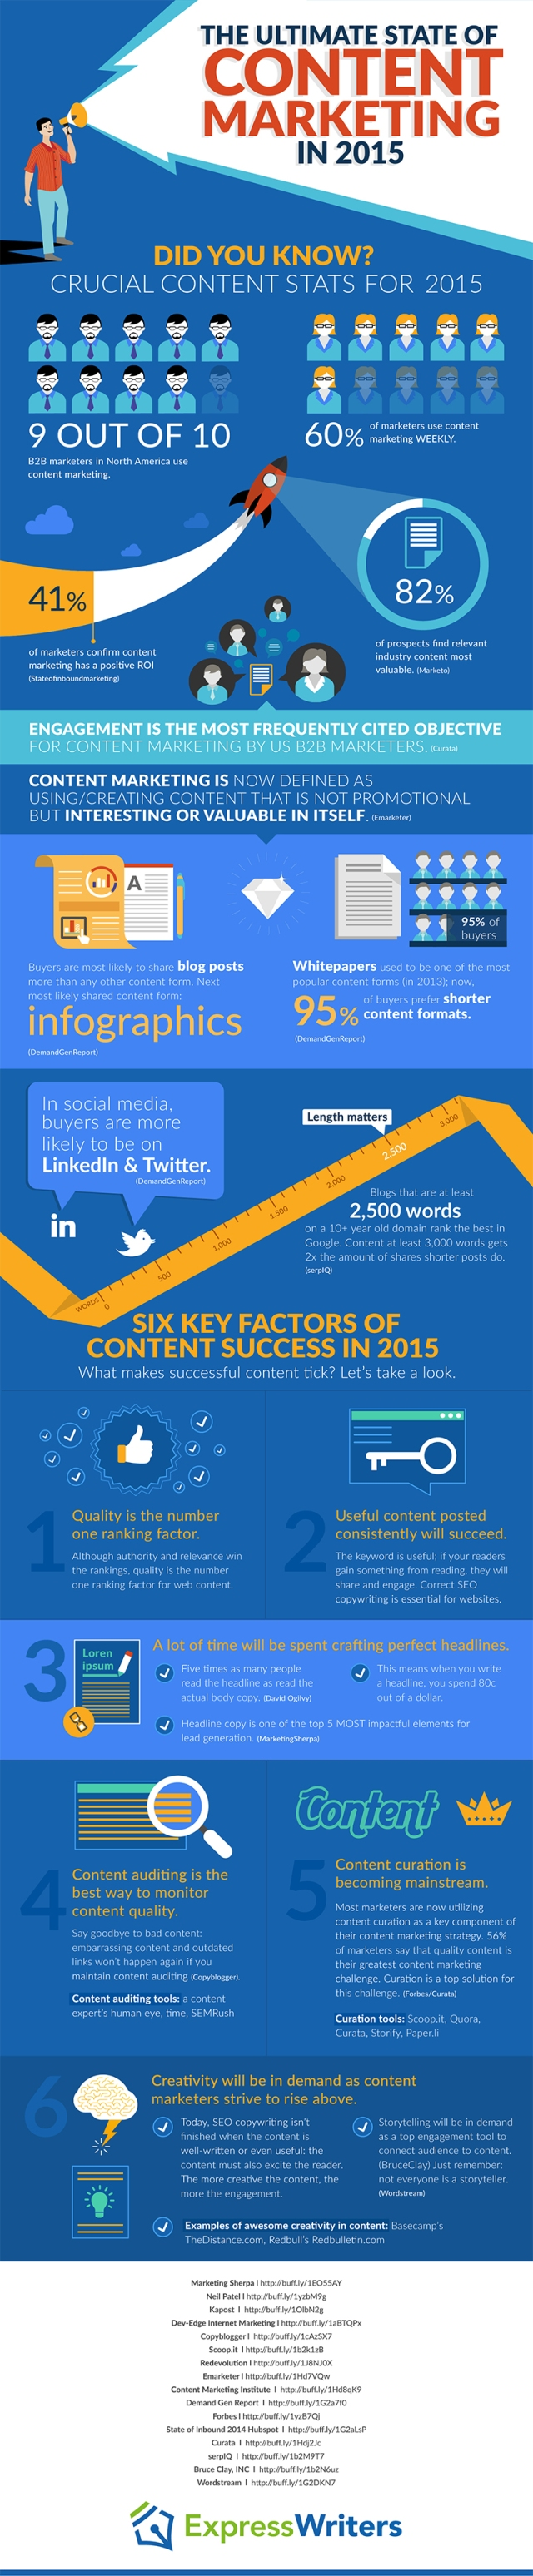 6 Key Factors in Achieving Content Marketing Success in 2015